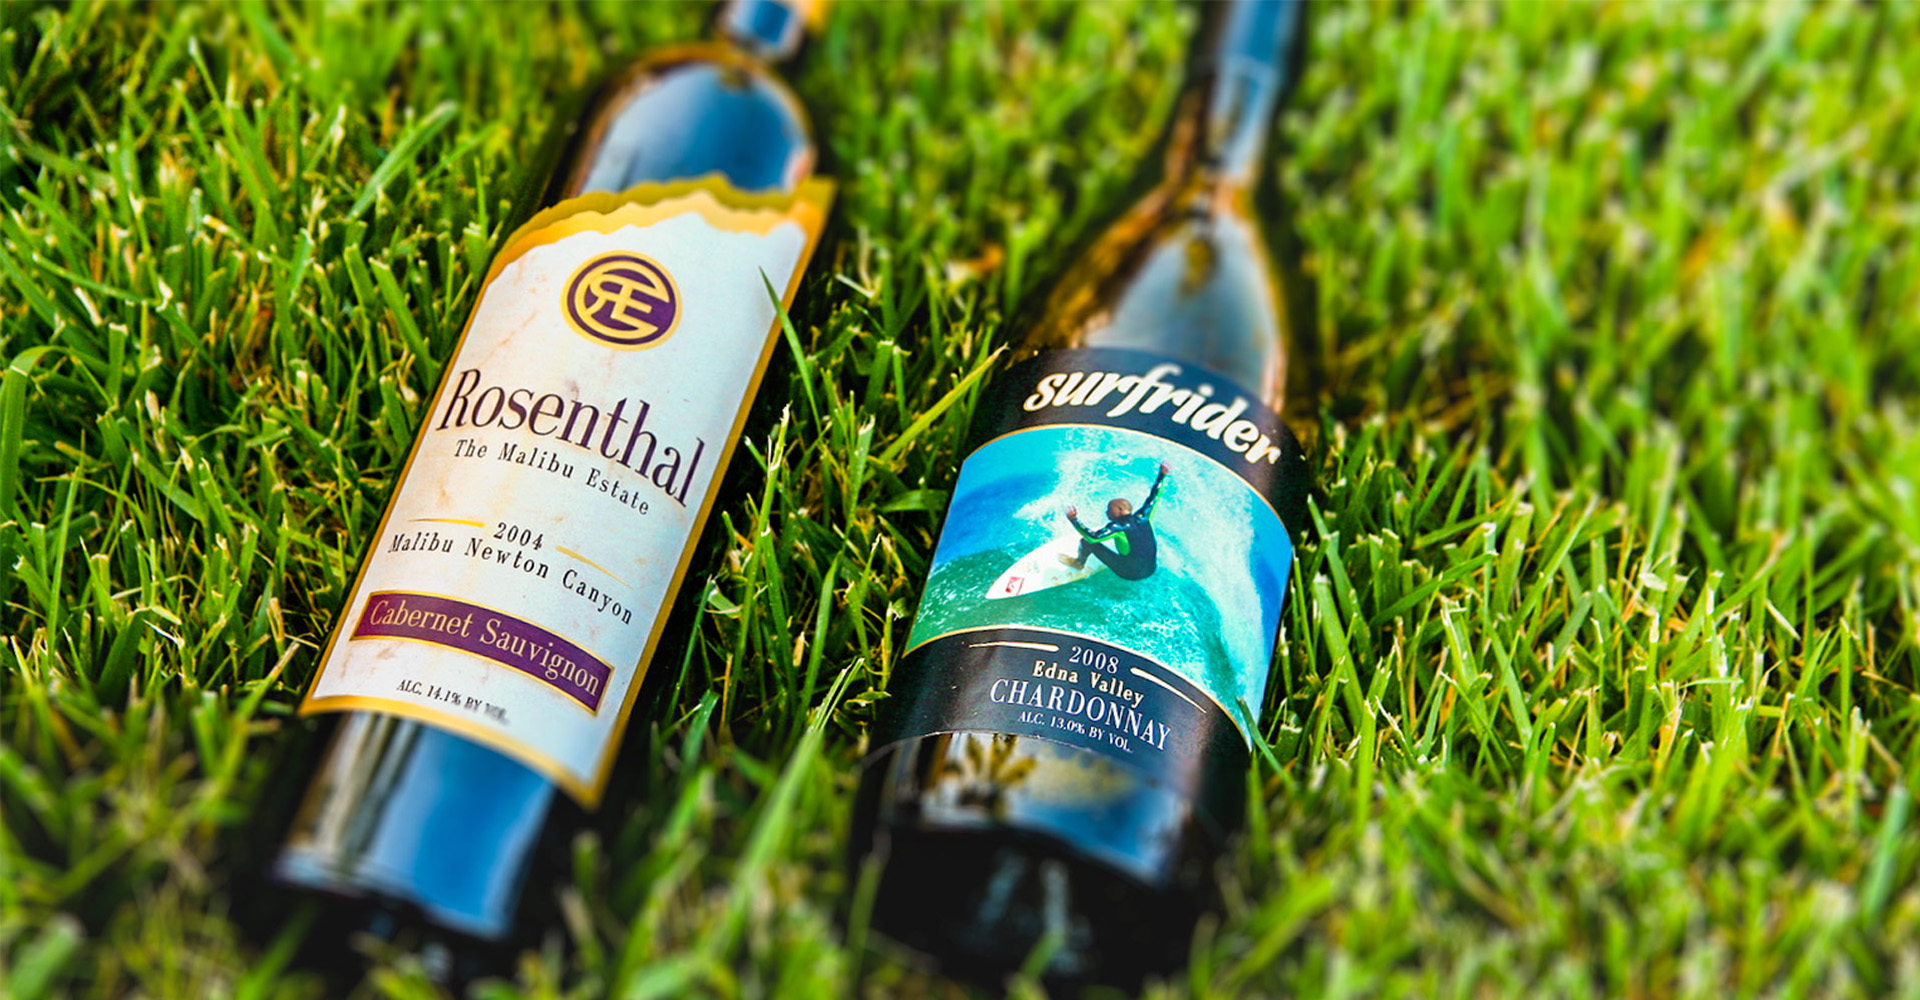 Bottles of Rosenthal and Surfrider wines laying in the grass